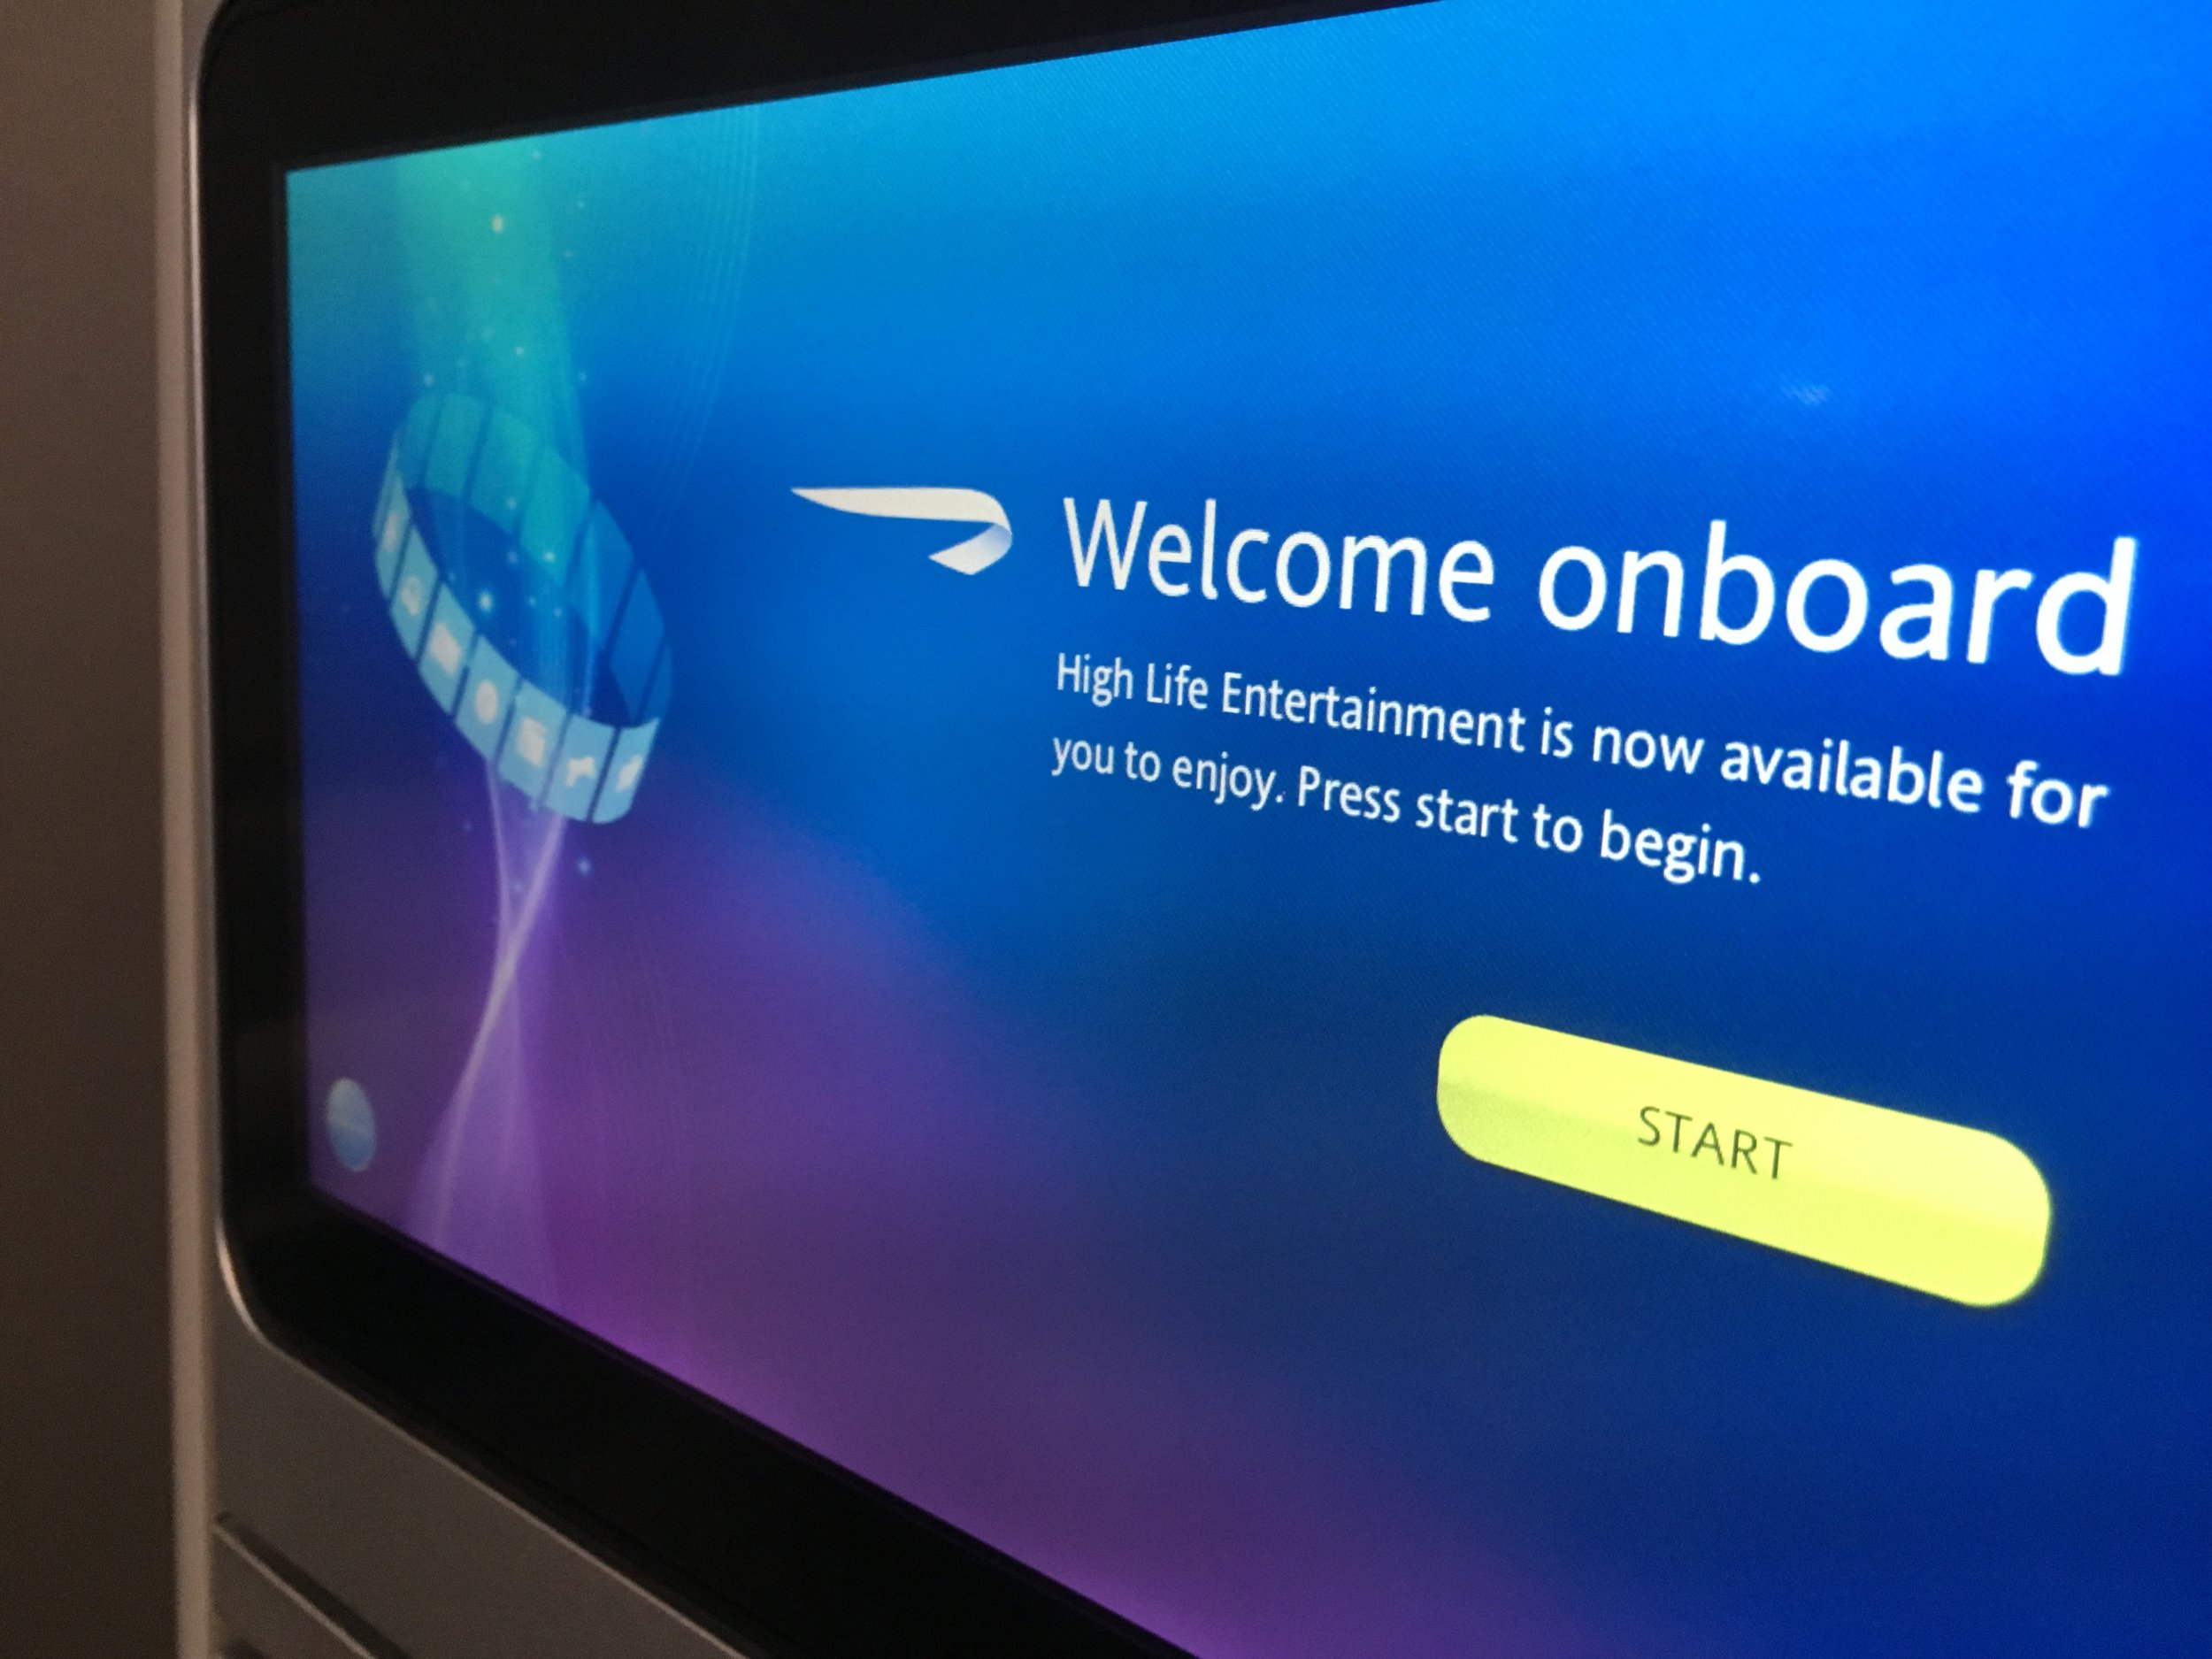 The inflight entertainment system features large screens, easy-to-use touch-screen controls and a wide selections of movies, TV and other content.